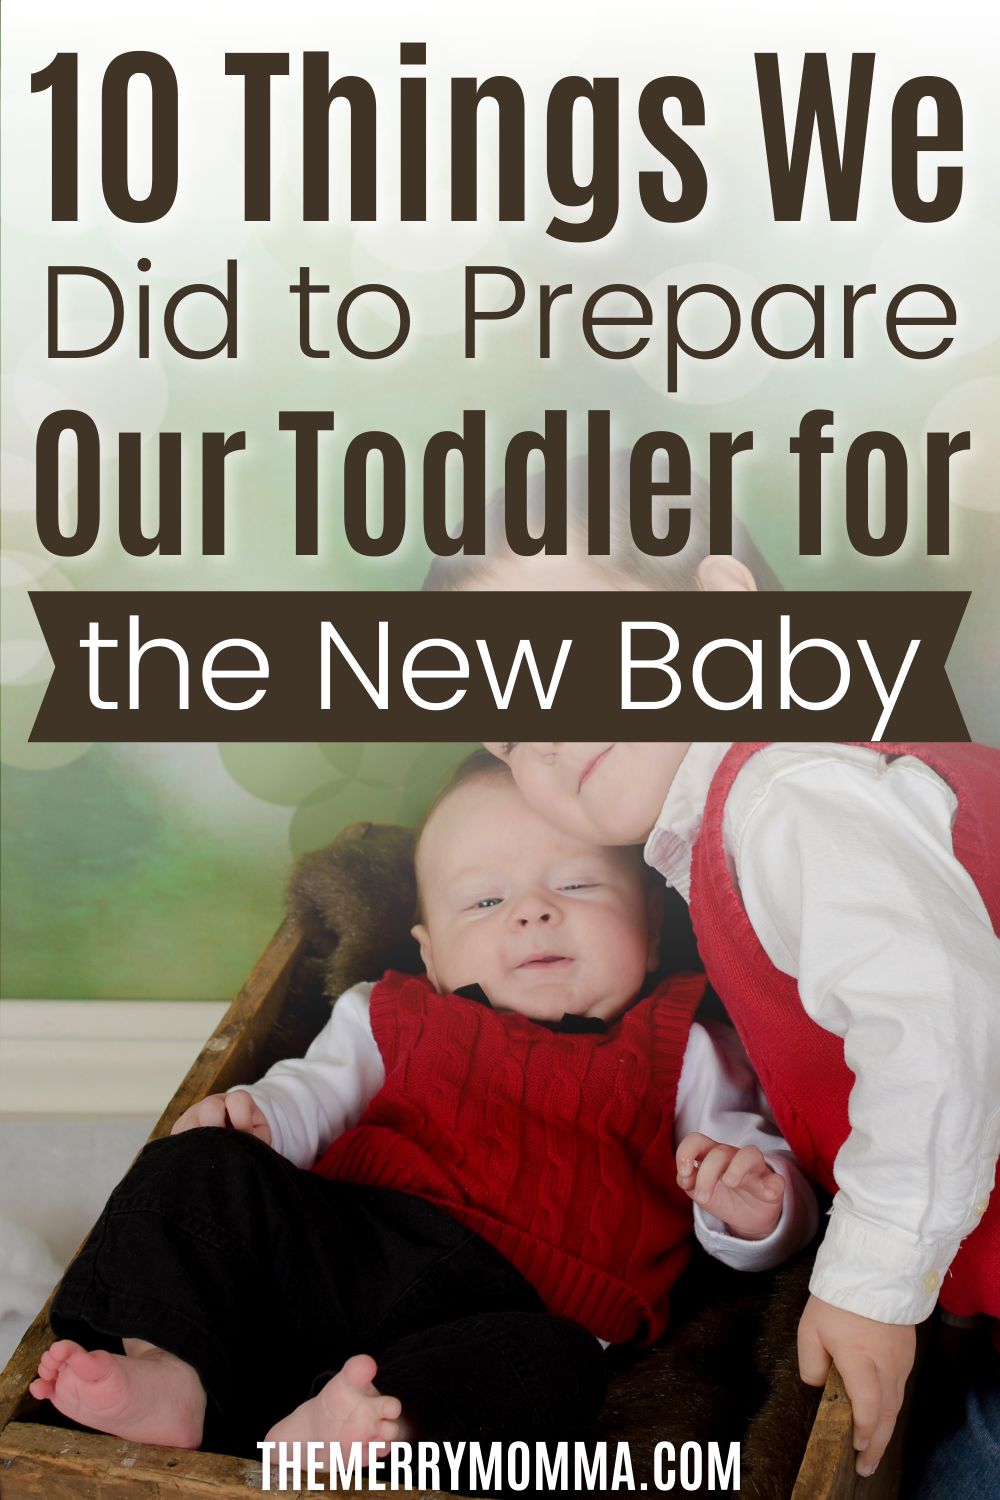 How We Prepared Our Toddler for the New Baby | The Merry Momma